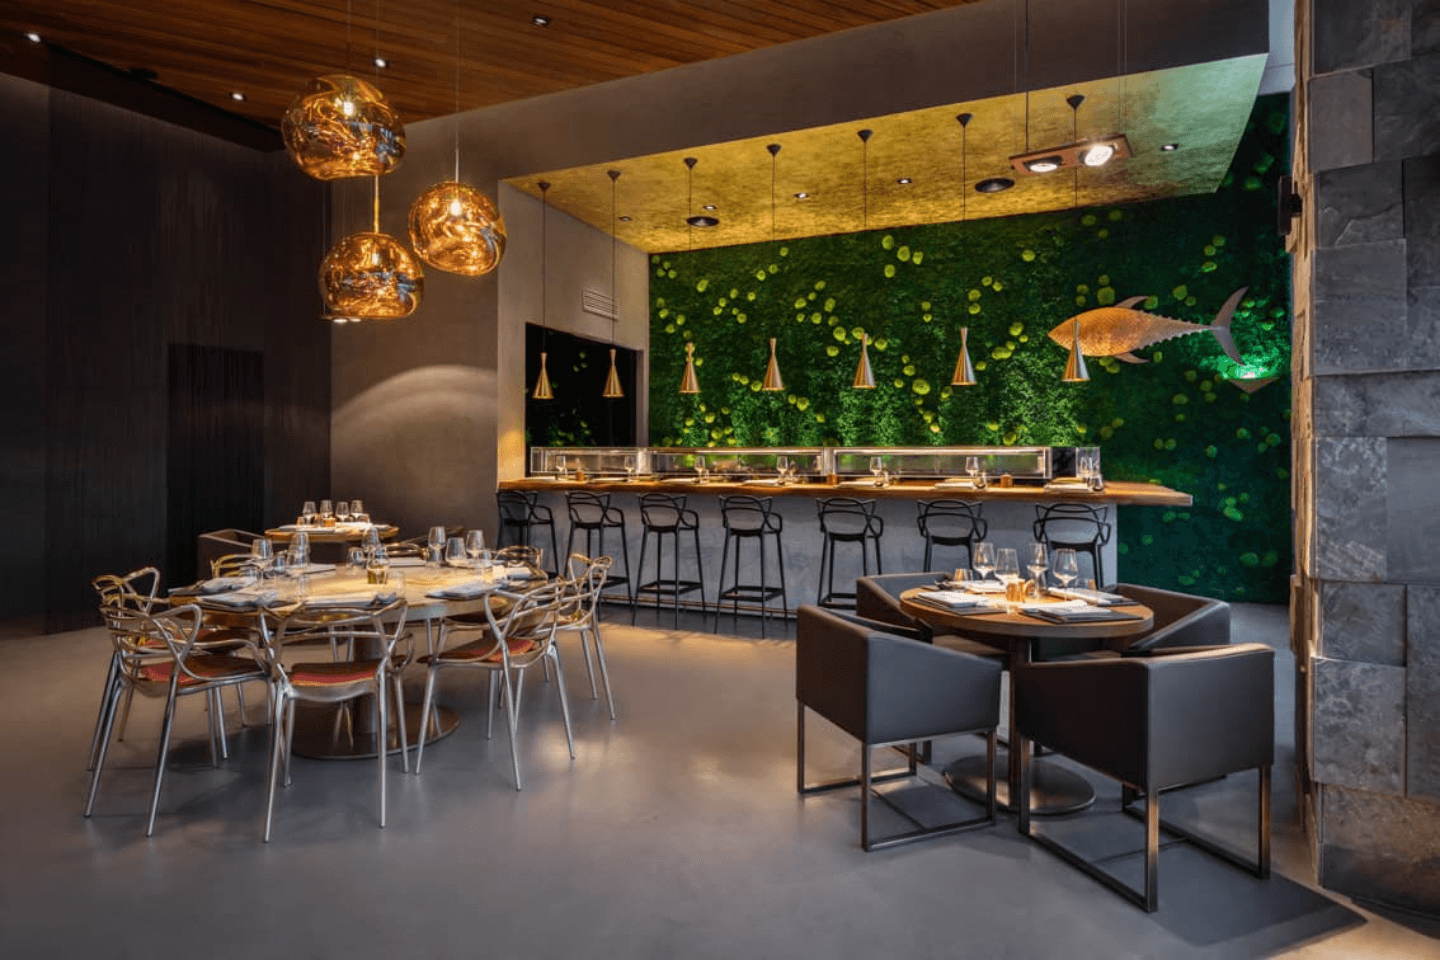 Restaurant fit out contractors dubai